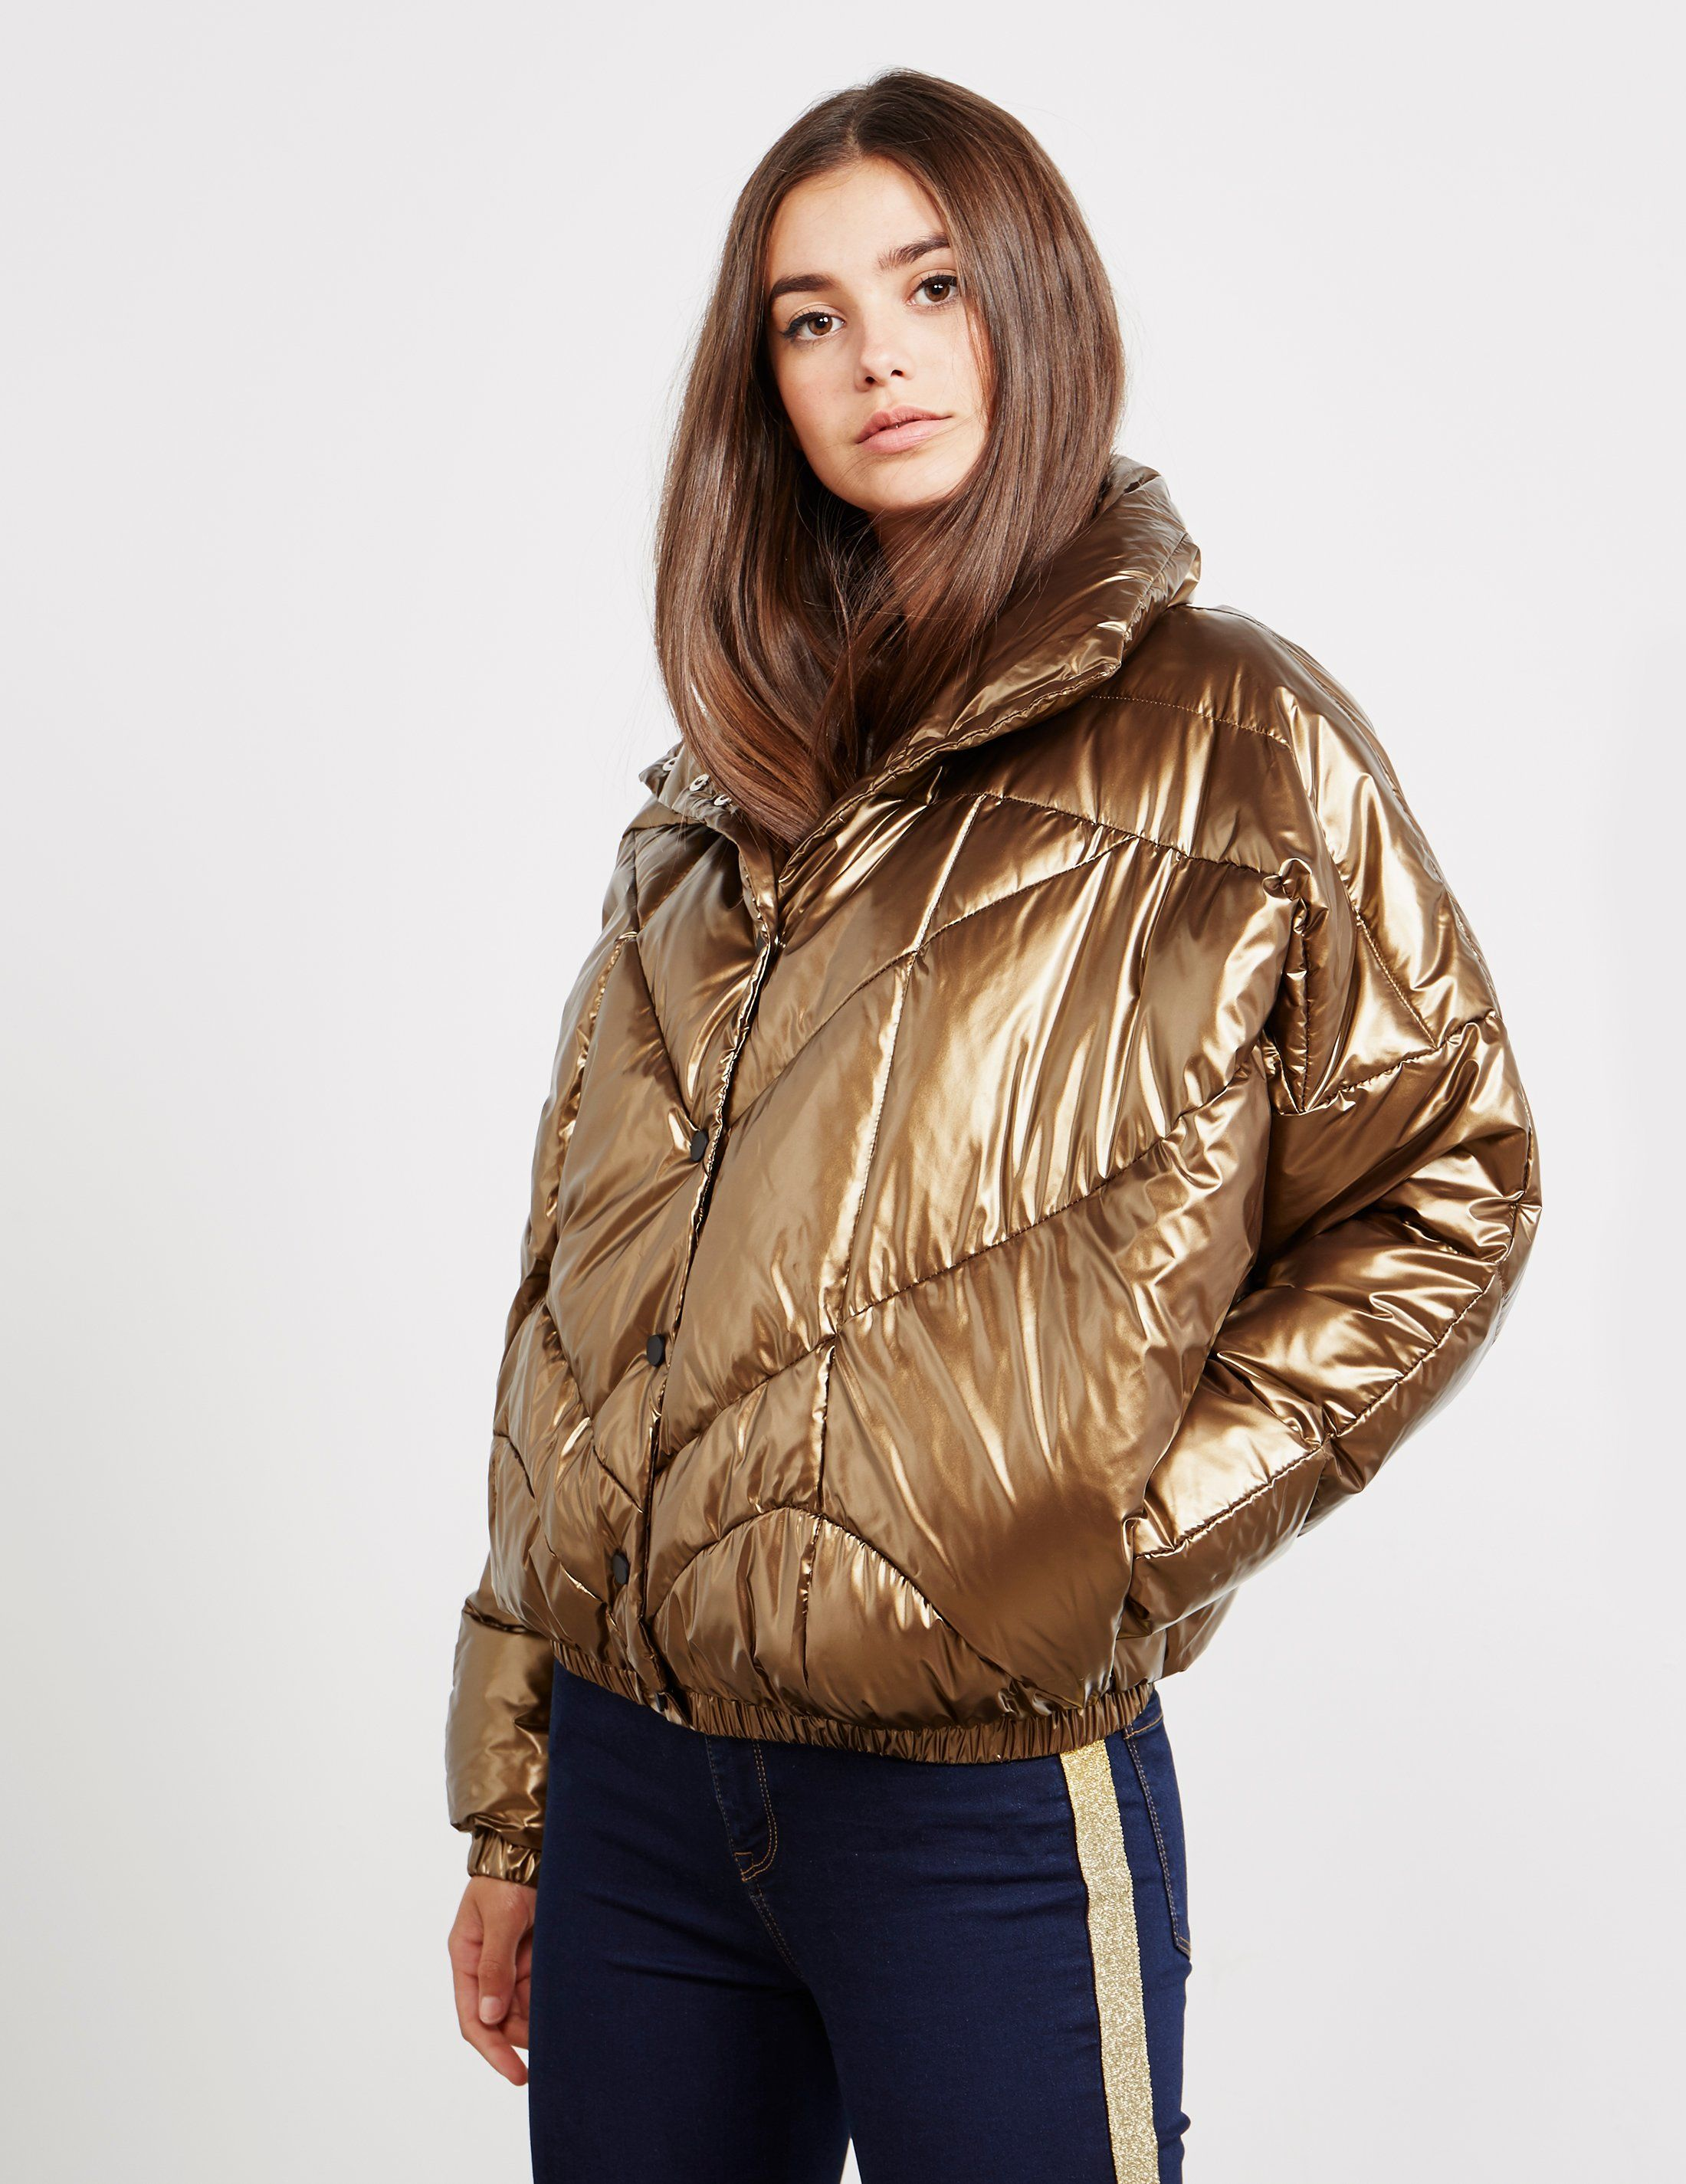 Pyrenex Willow Metallic Jacket - Online Exclusive